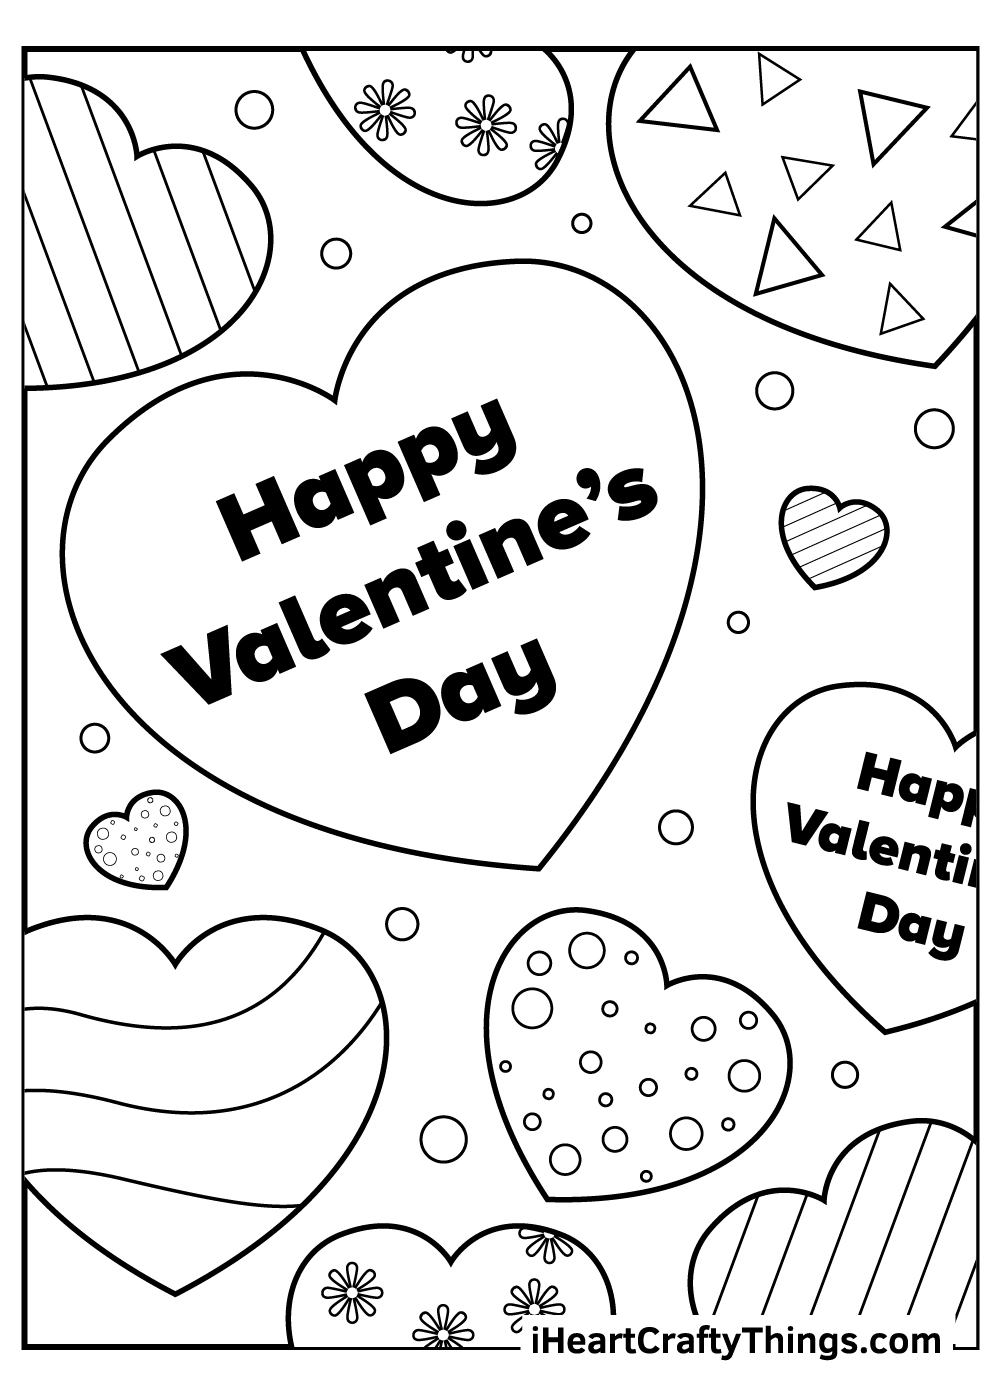 happy valentine's day coloring pages free printable